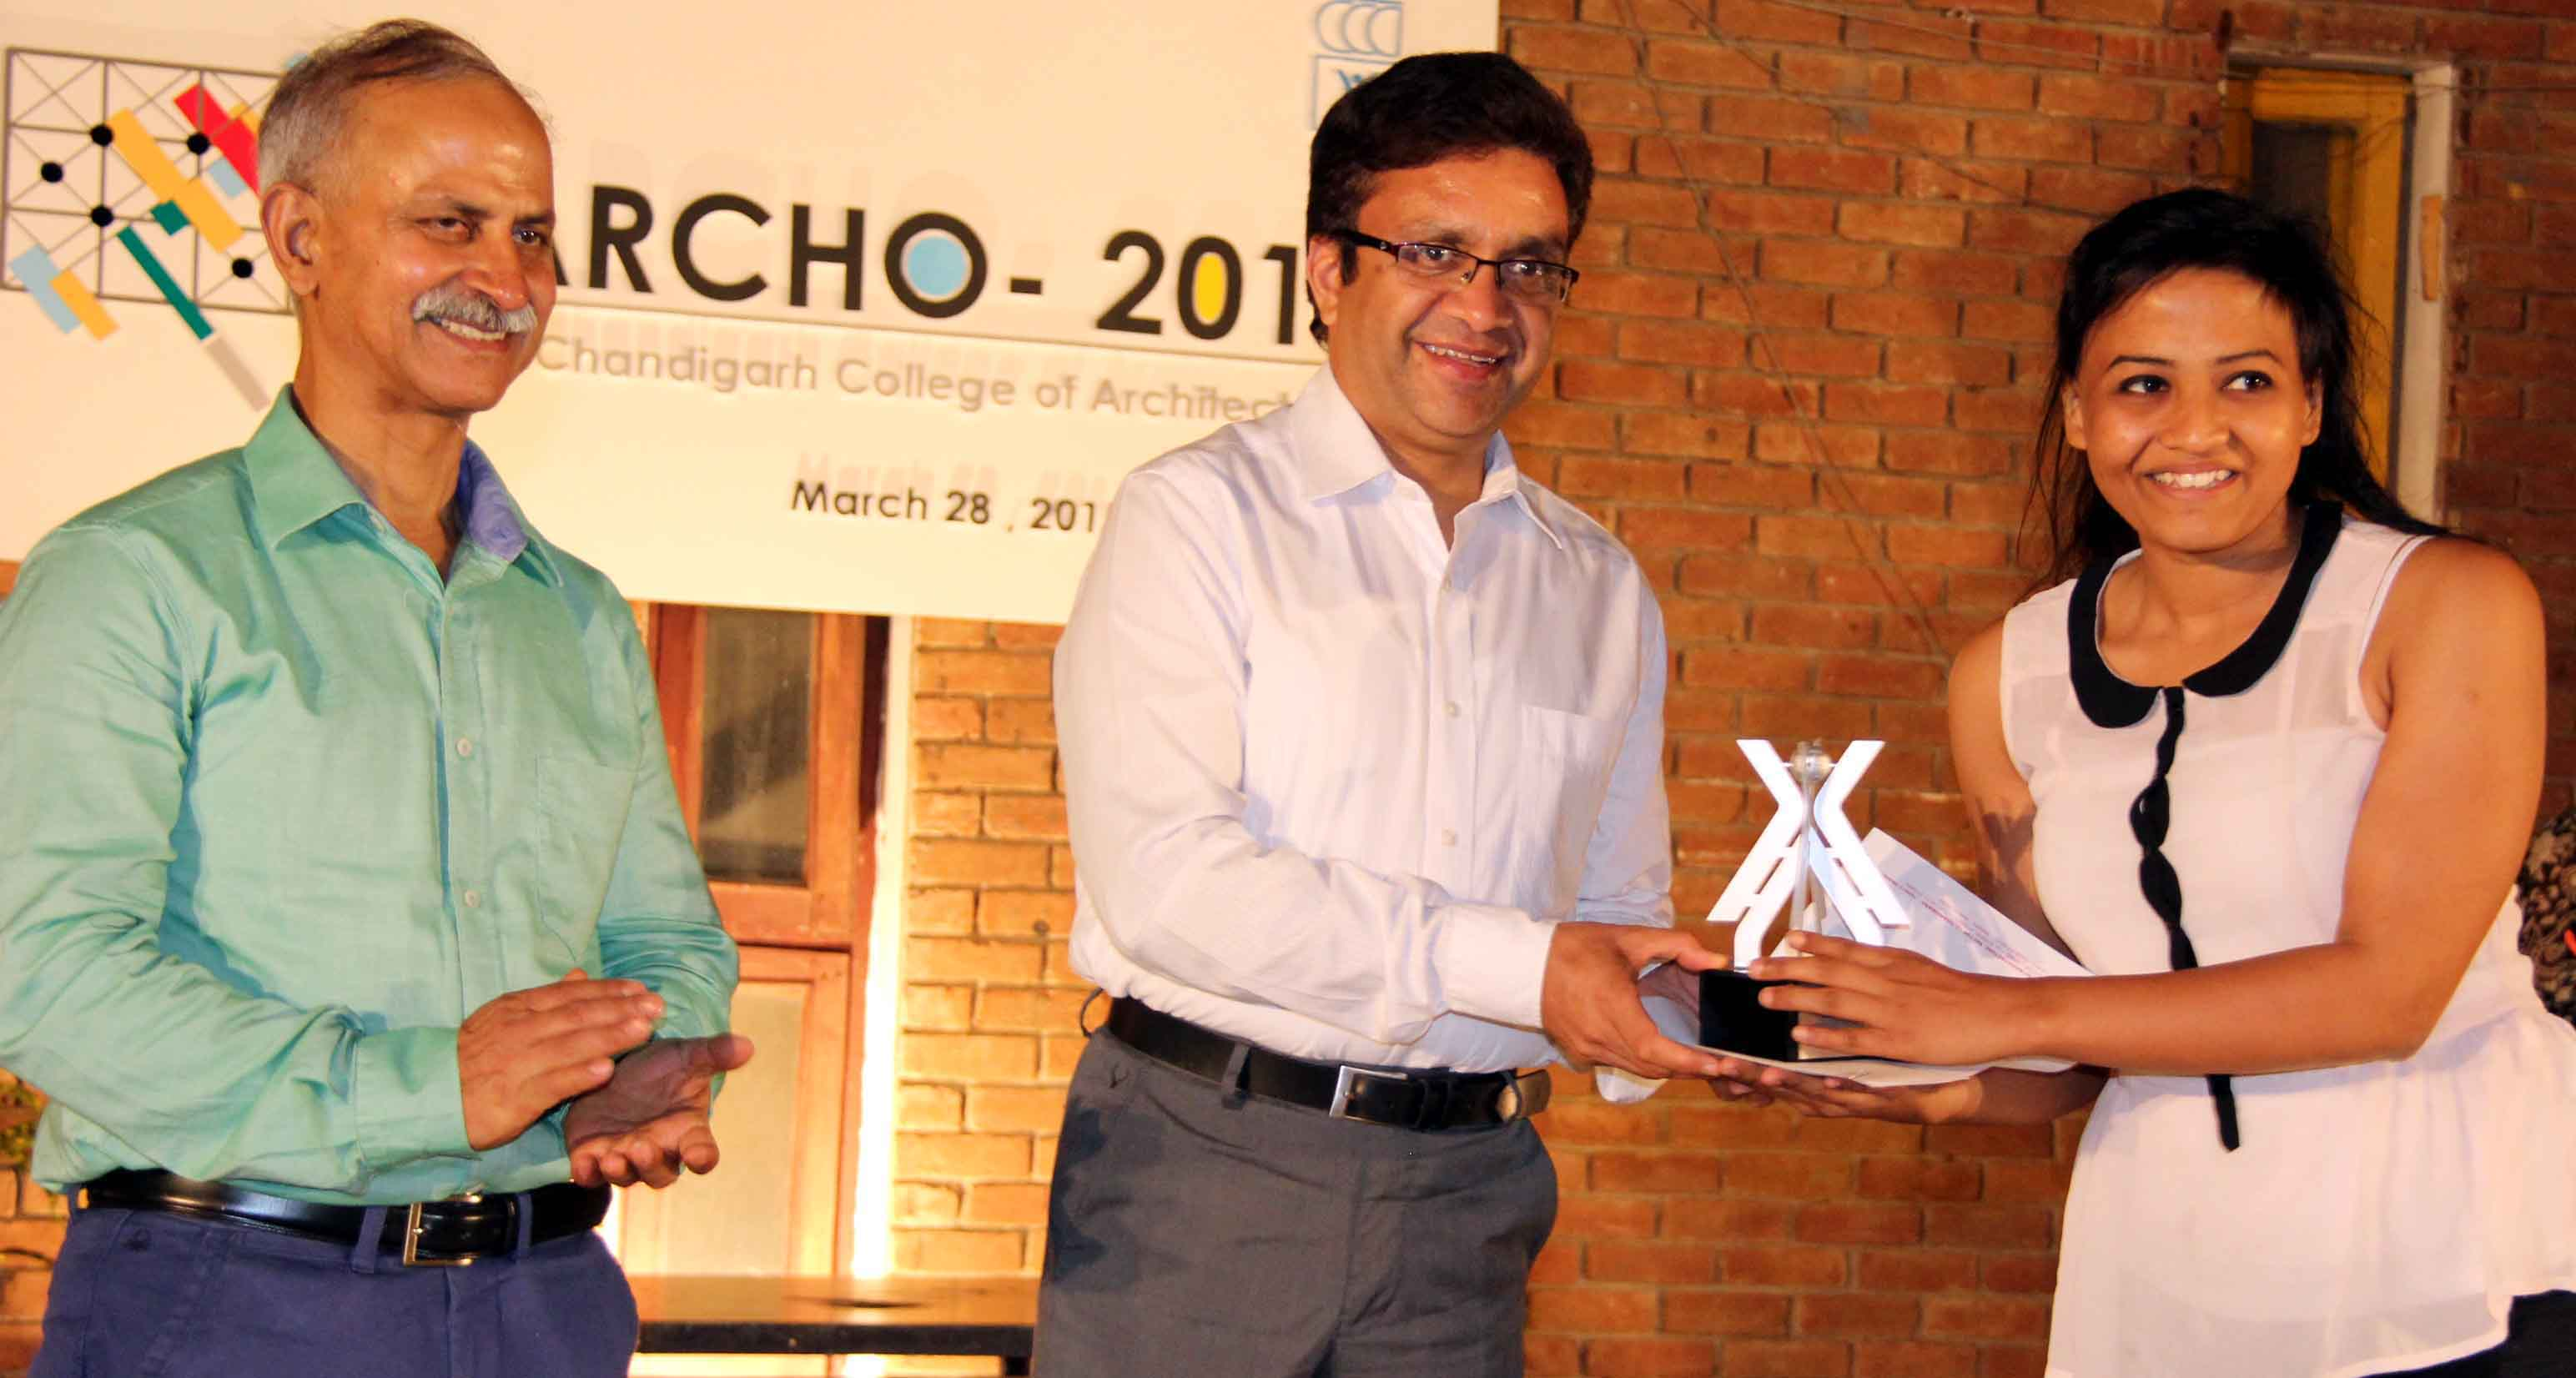 UT Home Secretary, Mr. Anurag Agarwal giving away prizes to the outstanding students in the 54th Annual Festivities Week �ARCHO-2015� at Chandigarh College of Architecture, Sector-12, Chandigarh on Saturday, March 28, 2015.